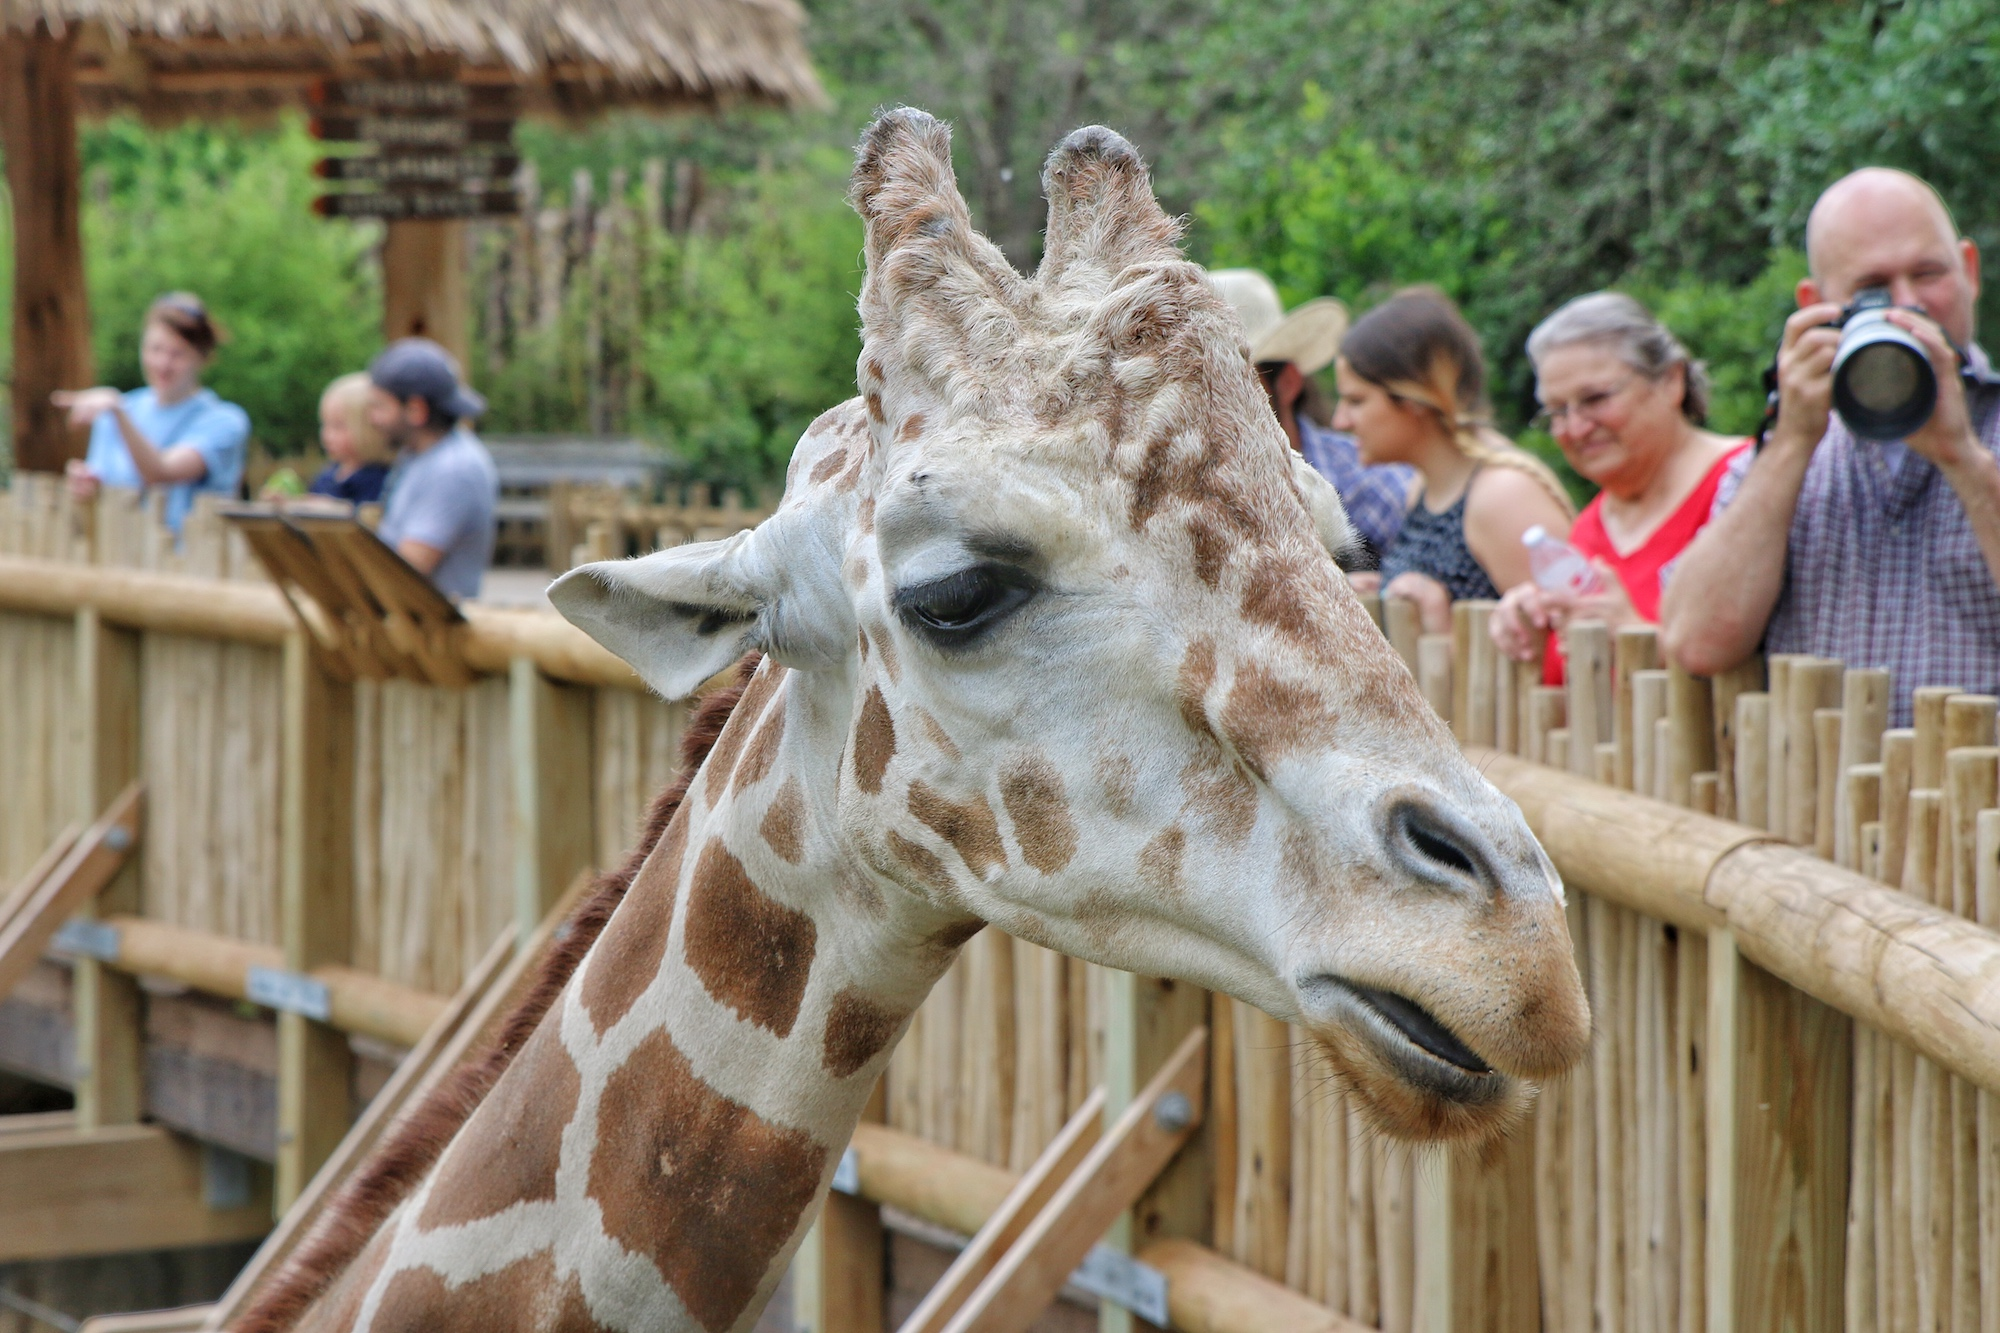 get up close to giraffes at African savanna exhibit